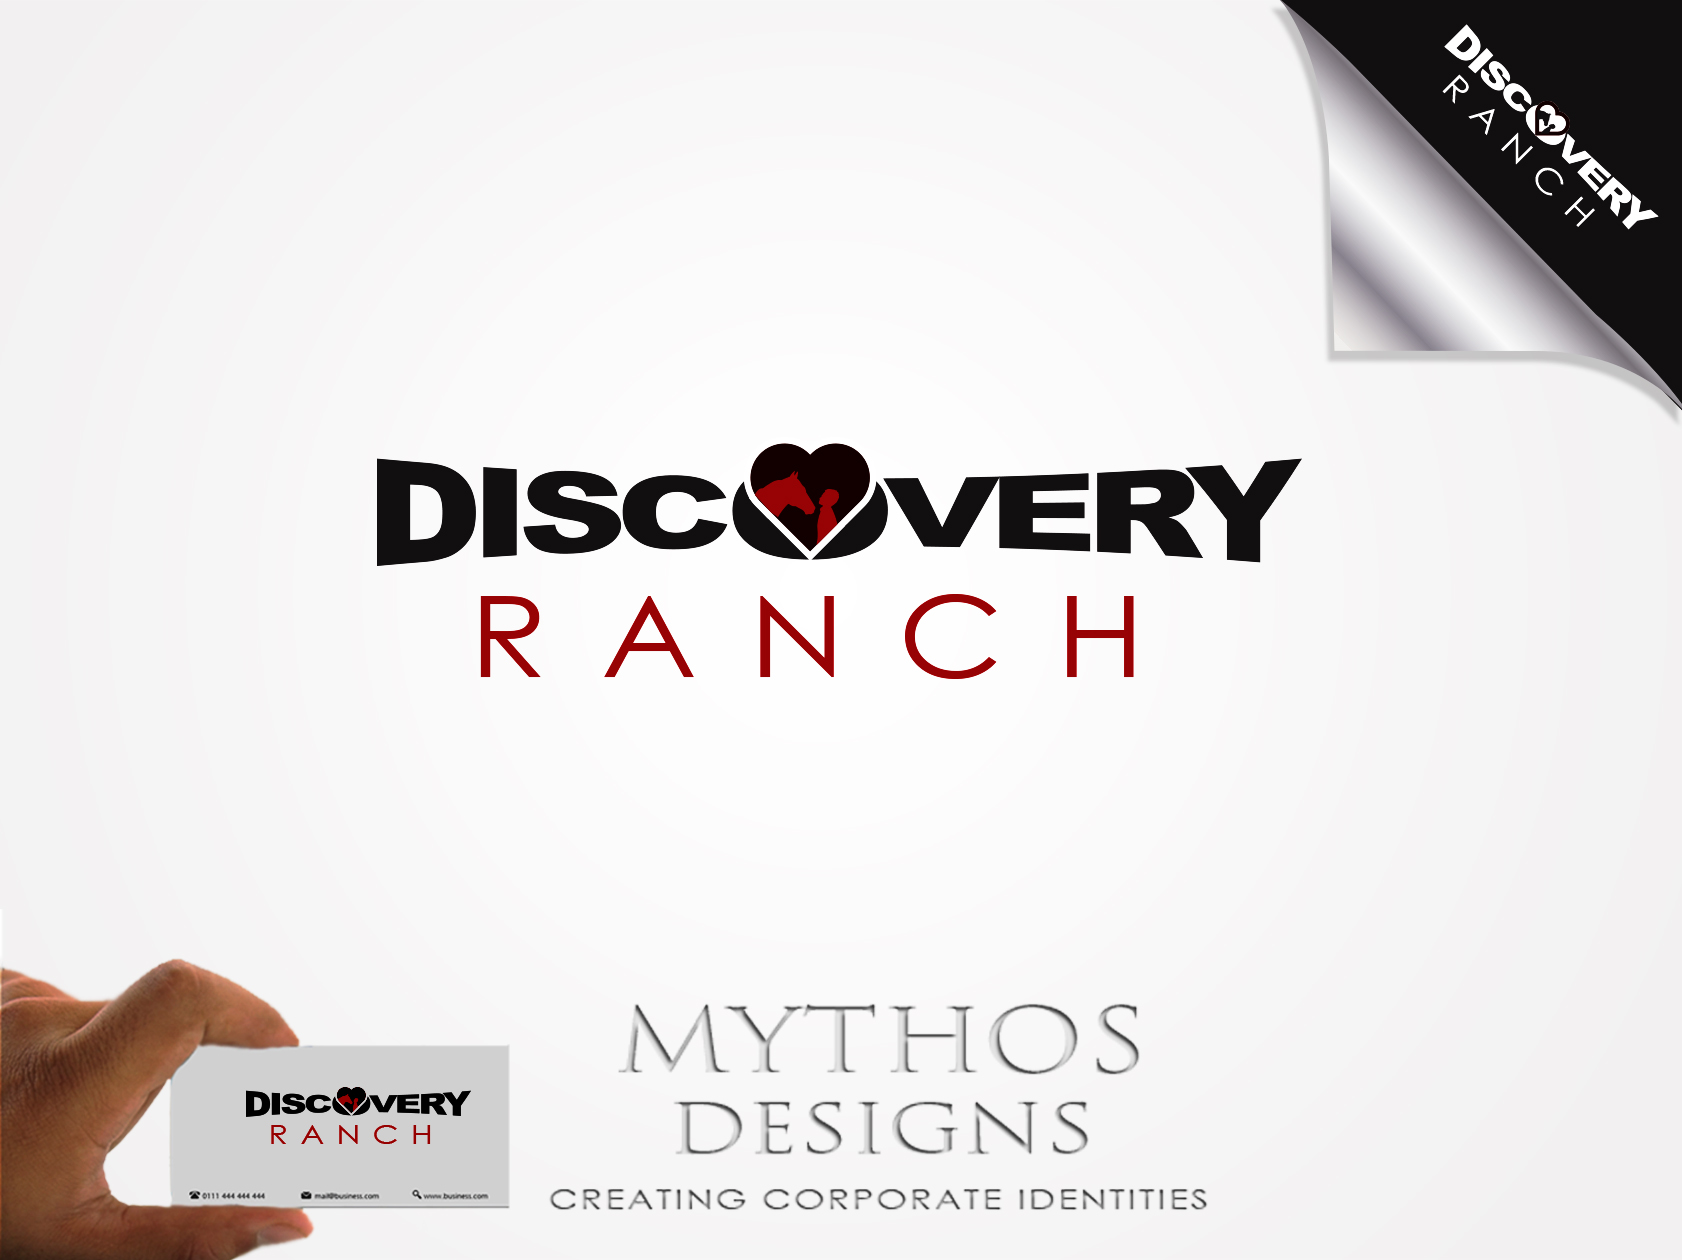 Logo Design by Mythos Designs - Entry No. 71 in the Logo Design Contest Creative Logo Design for Discovery Ranch.